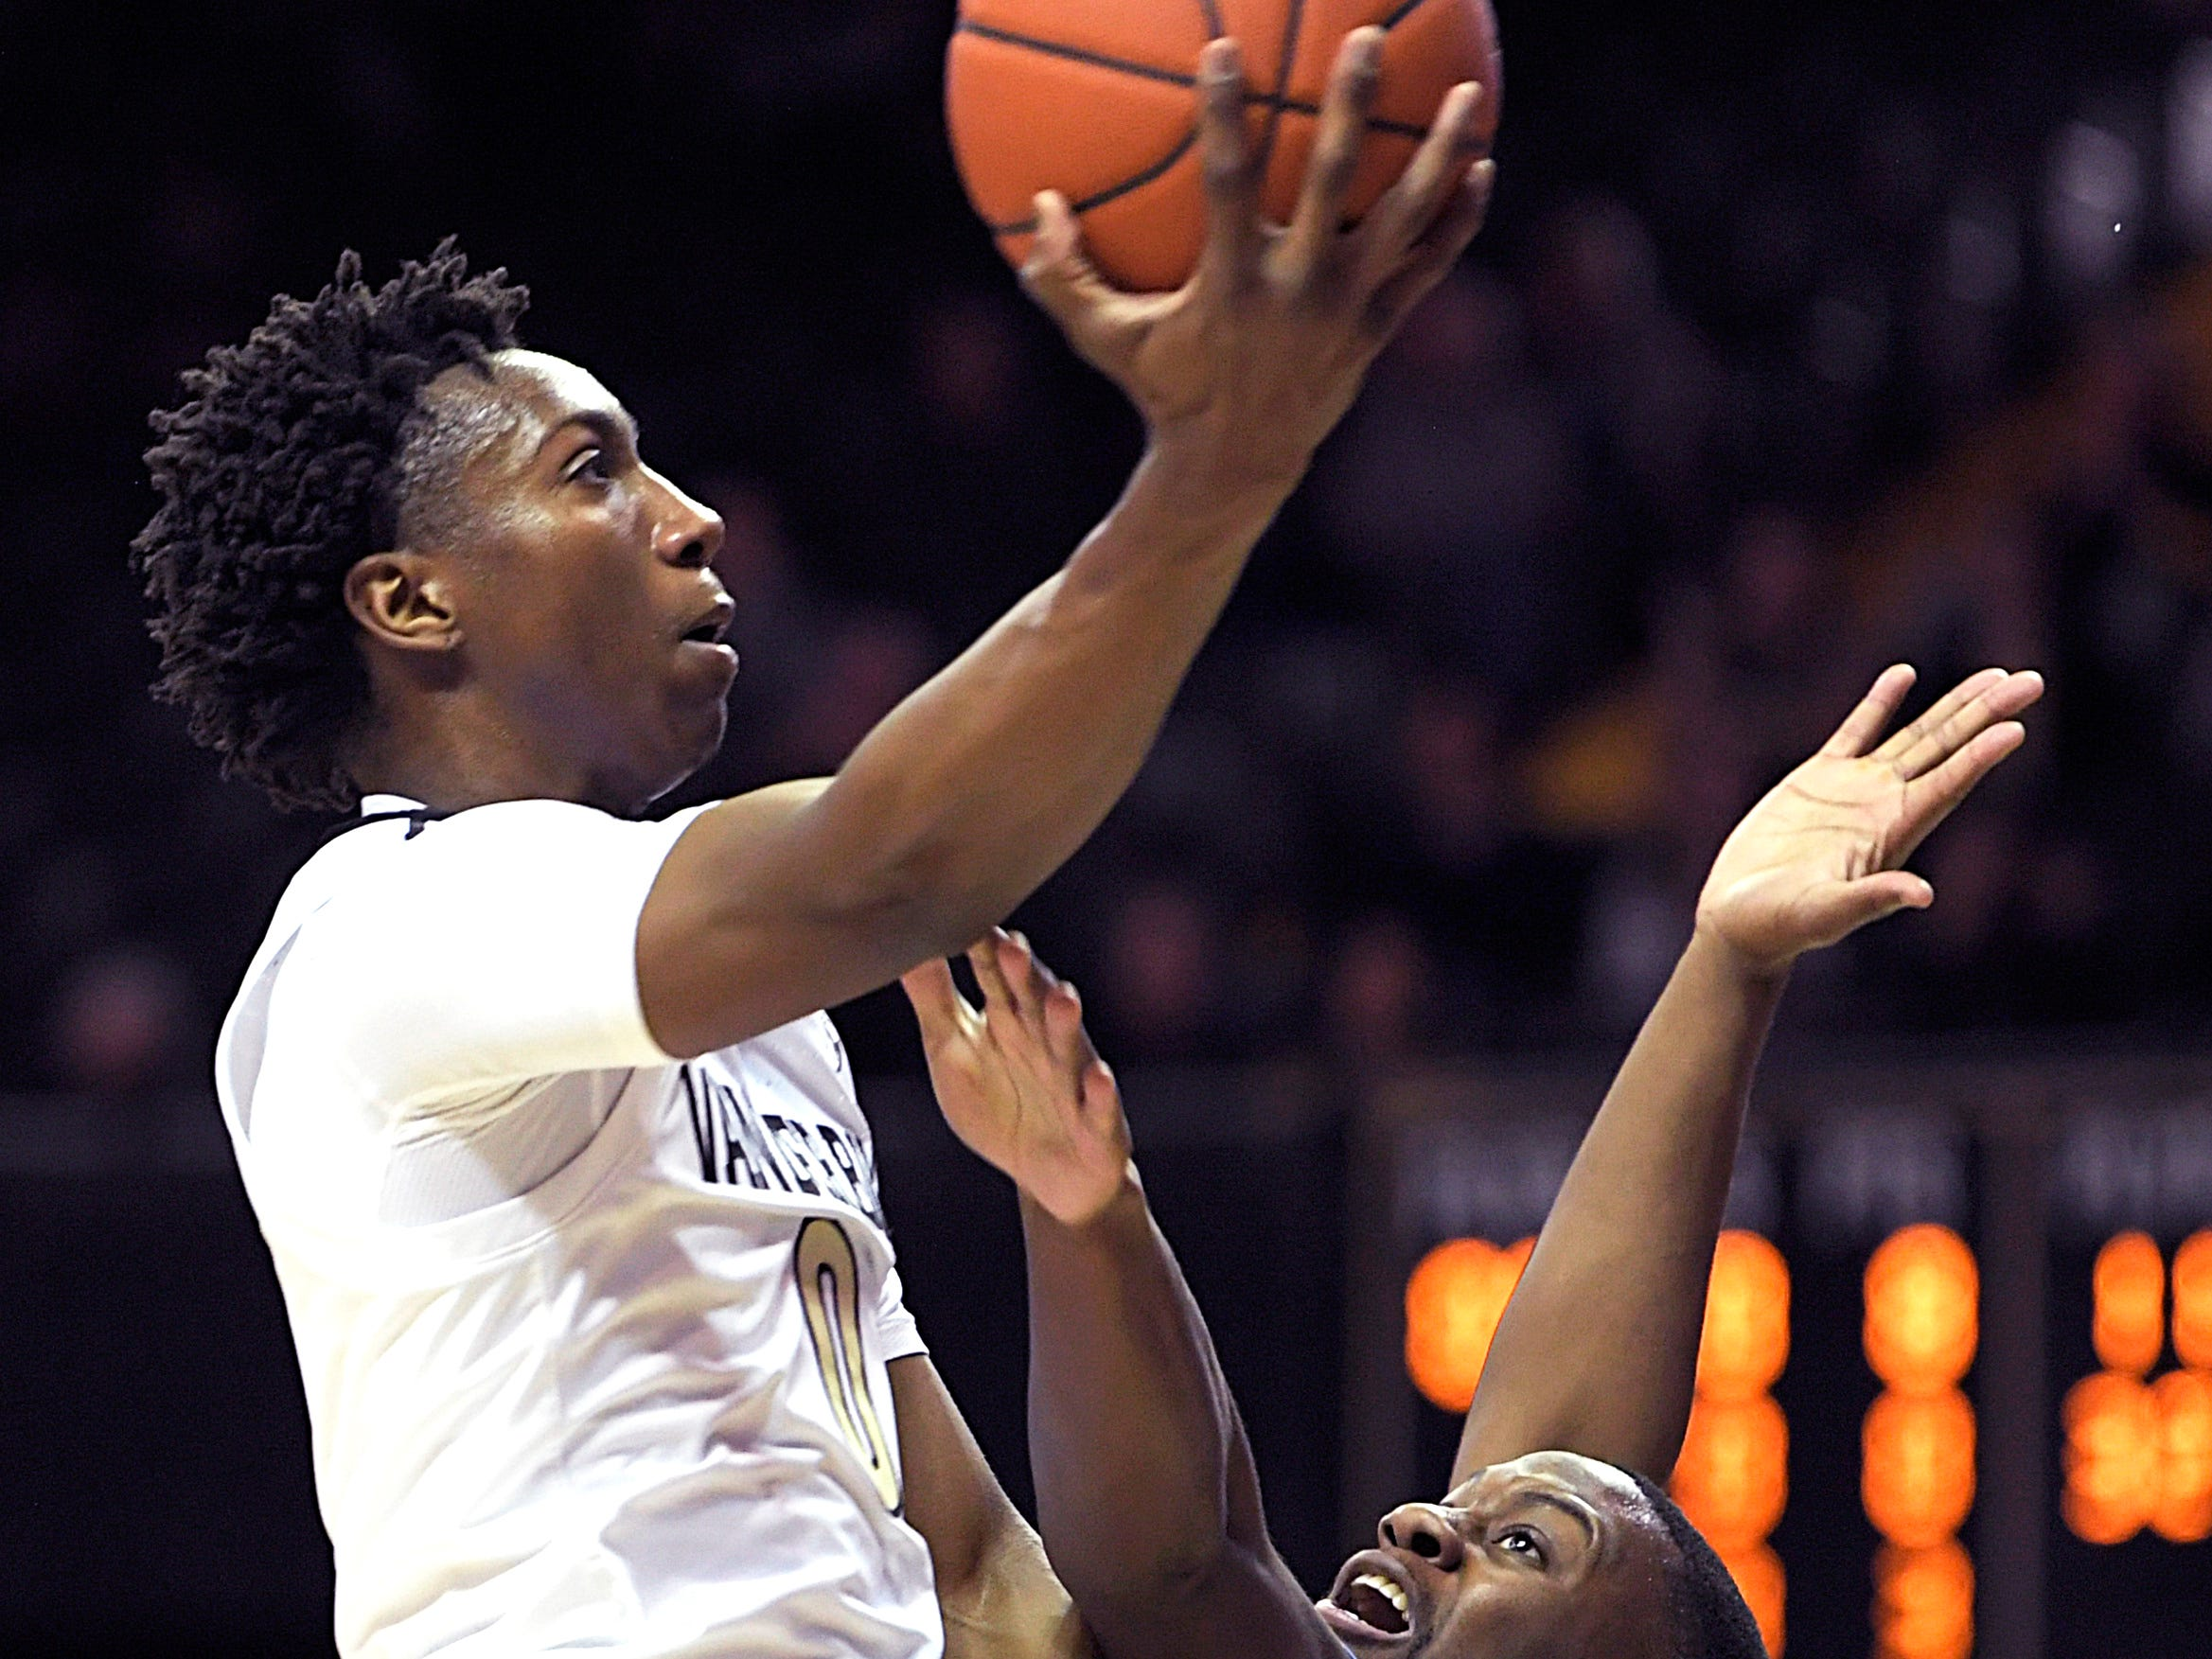 Vanderbilt guard Saben Lee (0) shoots against Tennessee State forward DaJion Henderson (23) during a game at Memorial Gym in Nashville on Saturday, Dec. 29, 2018.